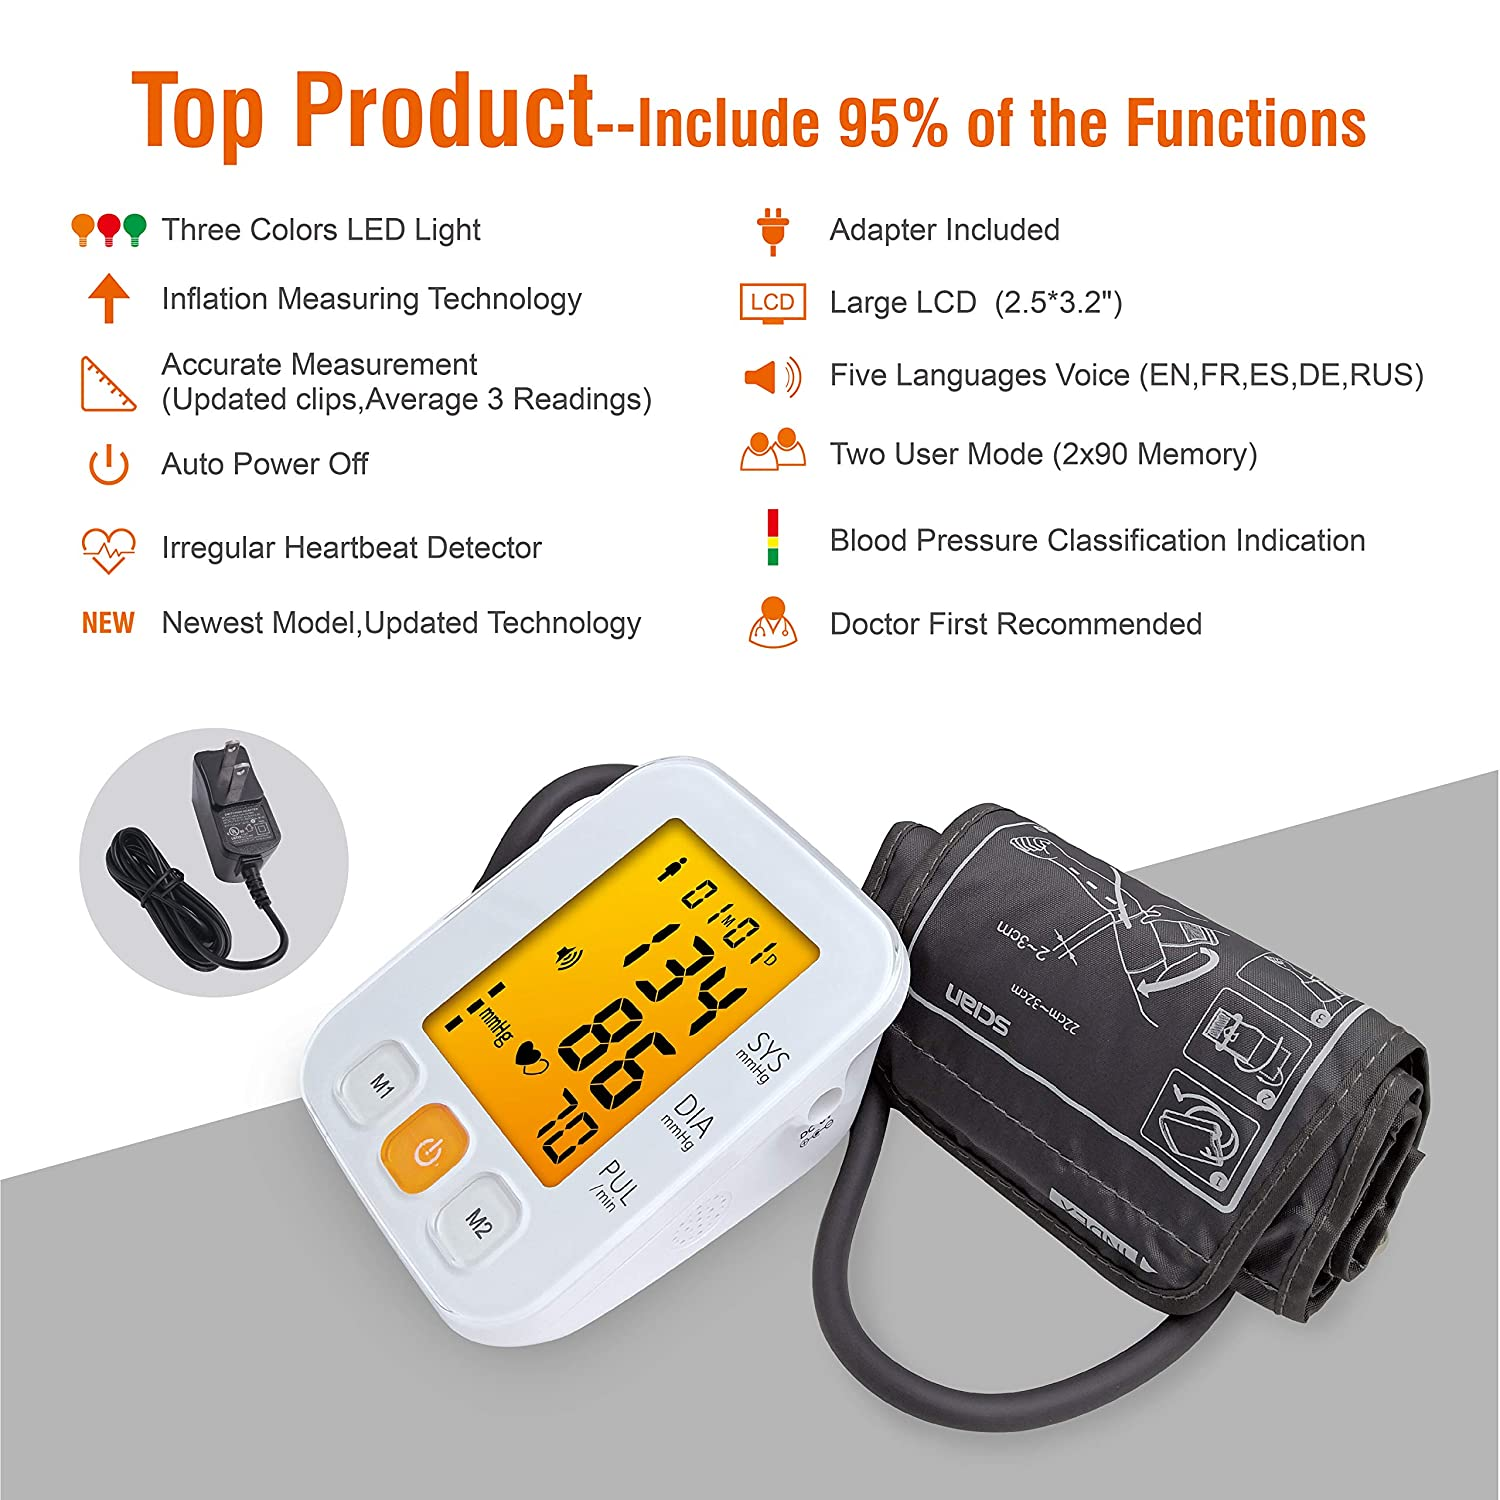 SCIAN Digital Blood Pressure Monitor Upper Arm – Adapter, 3 Colors LED, 5 Voices, 2×90 Memory Blood Pressure Machine Cuff Accurate Automatic Measure BP Monitor Device for Home Clinical Use